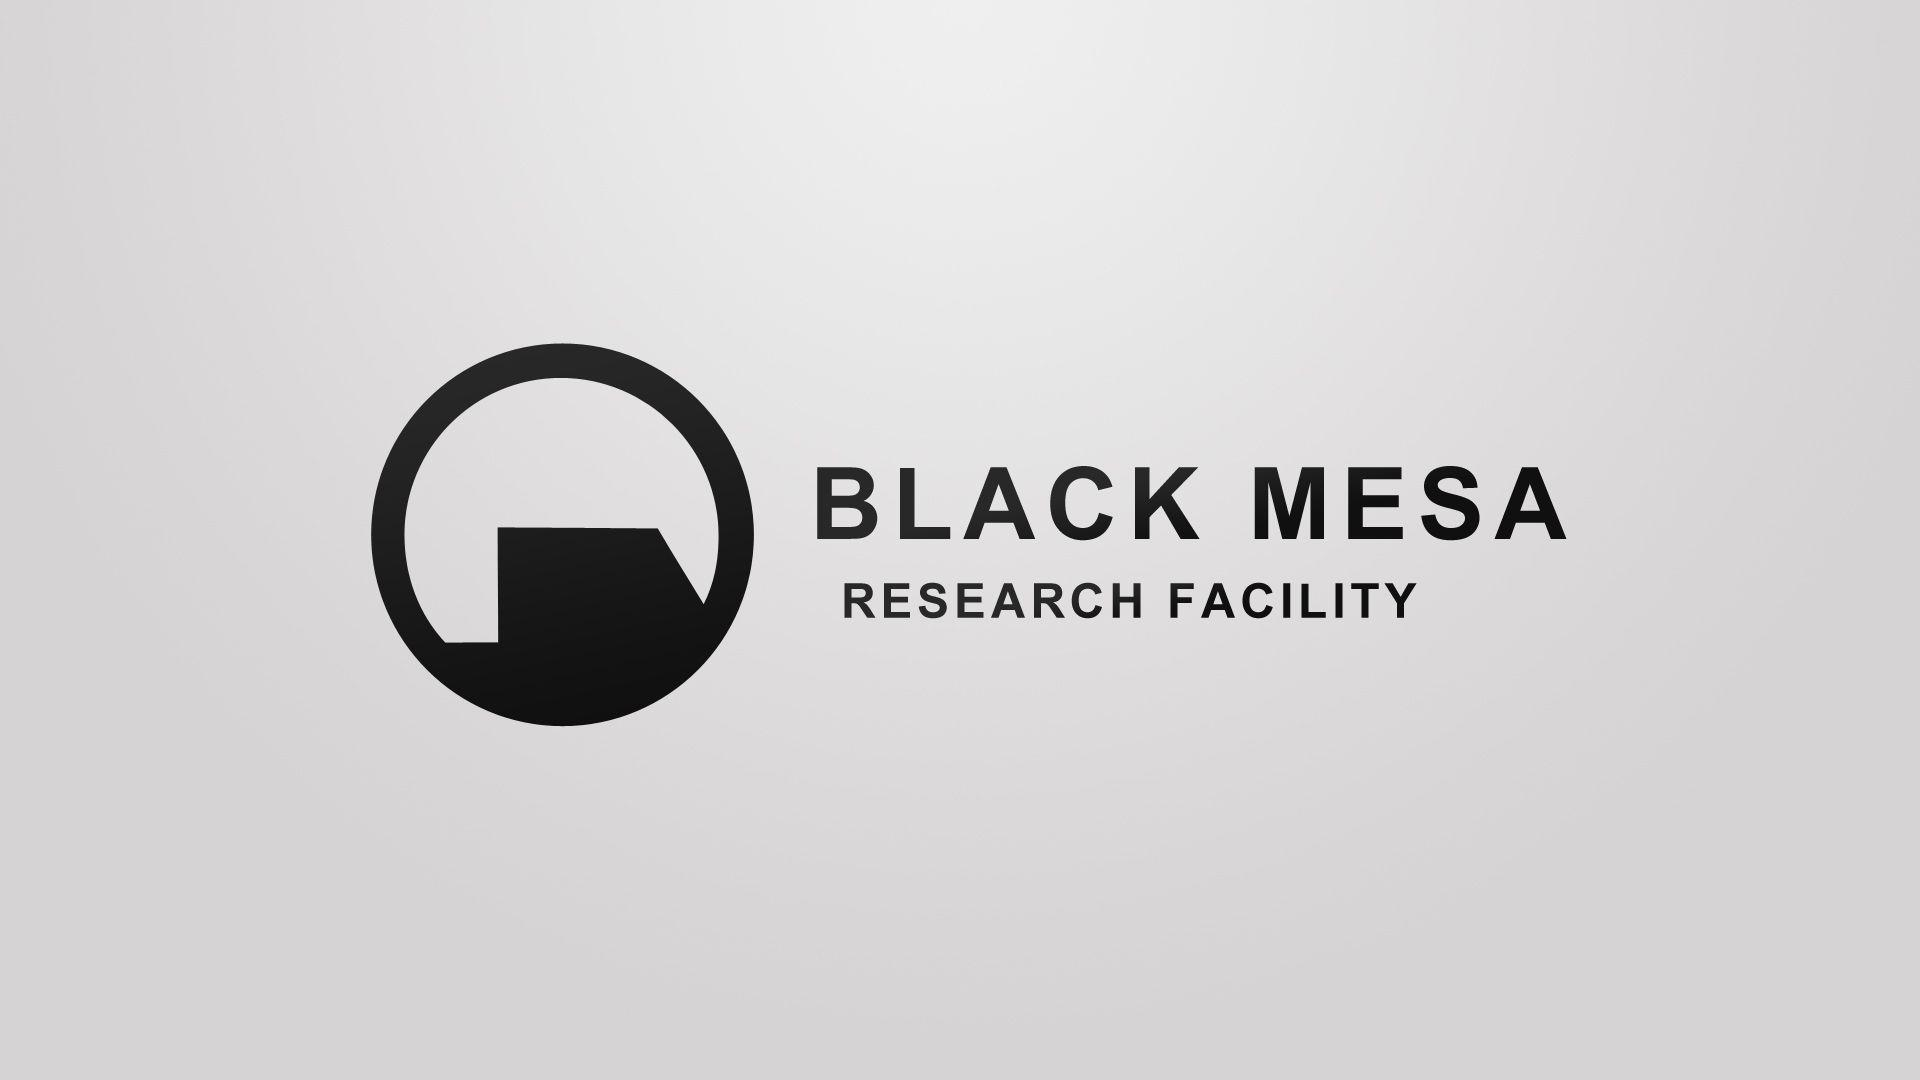 Black Mesa Research Facility Light Background by Ne1L on DeviantArt